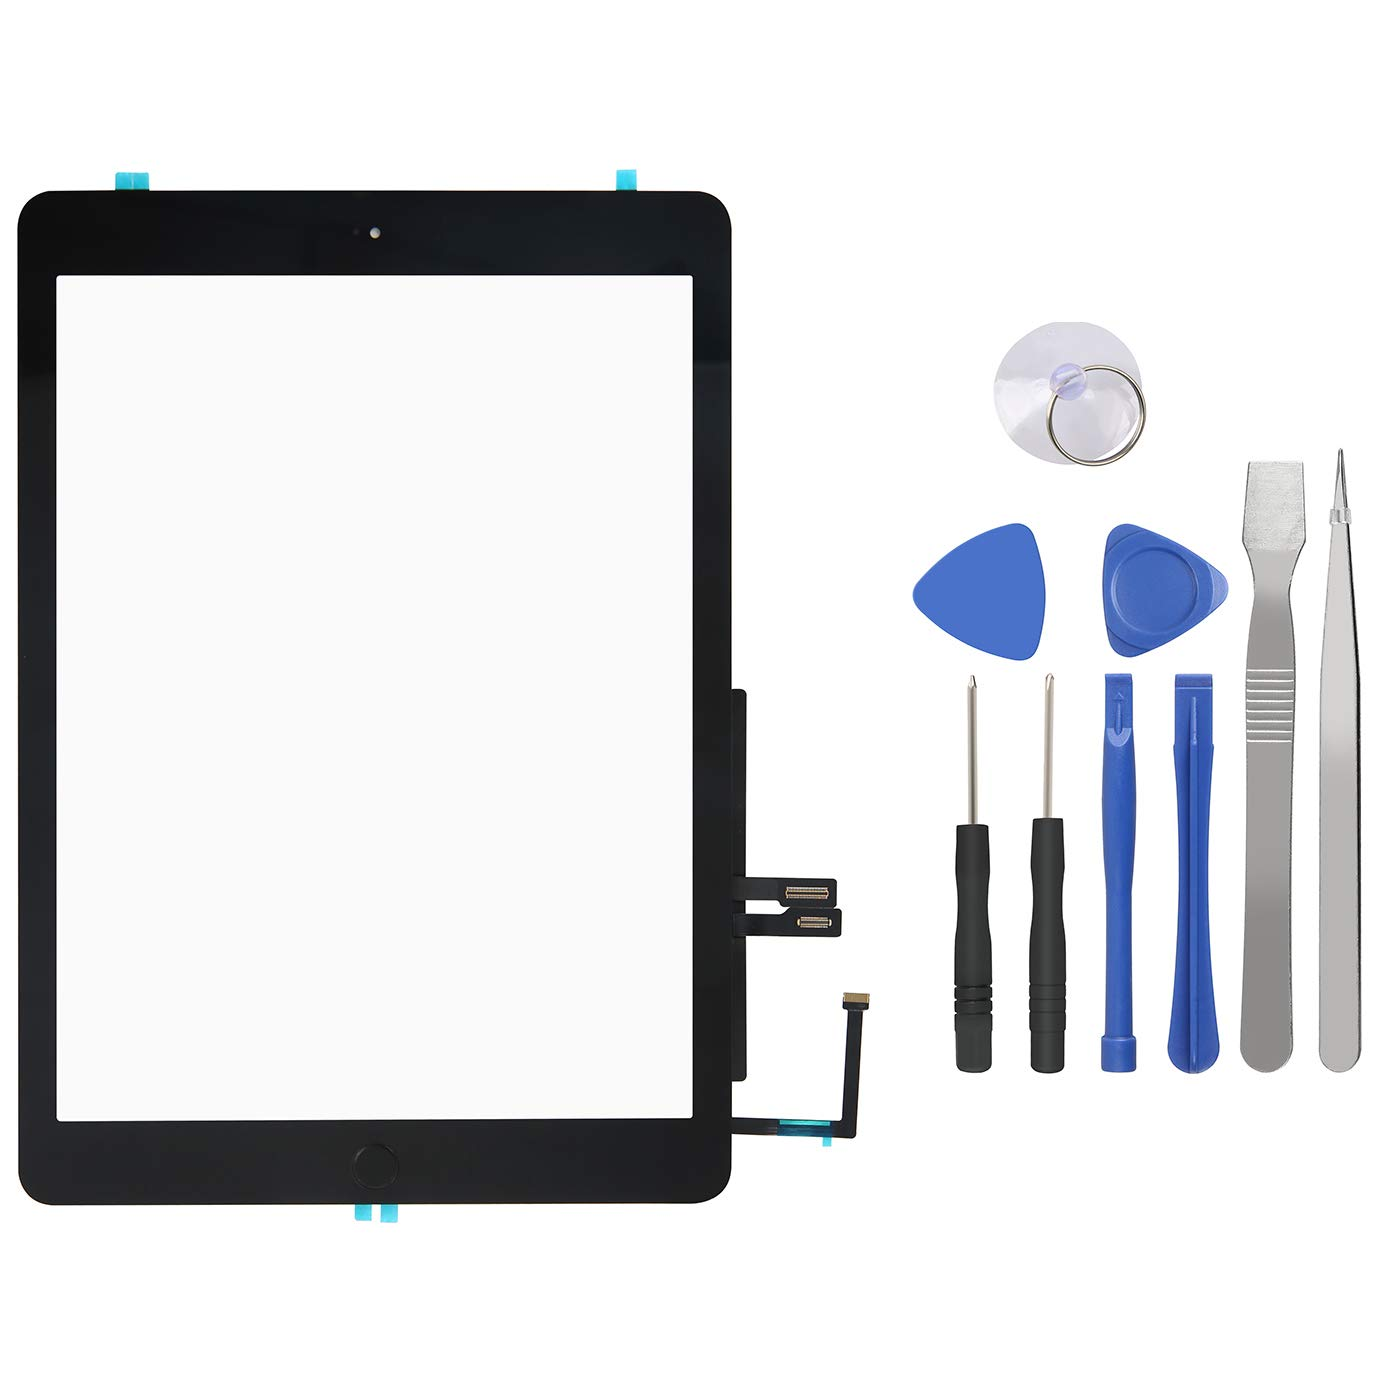 Touch Screen Digitizer for iPad 6th Generation - iPad 2018 Front Glass Replacement with Home Button & Tool Repair Kit (A1893, A1954)